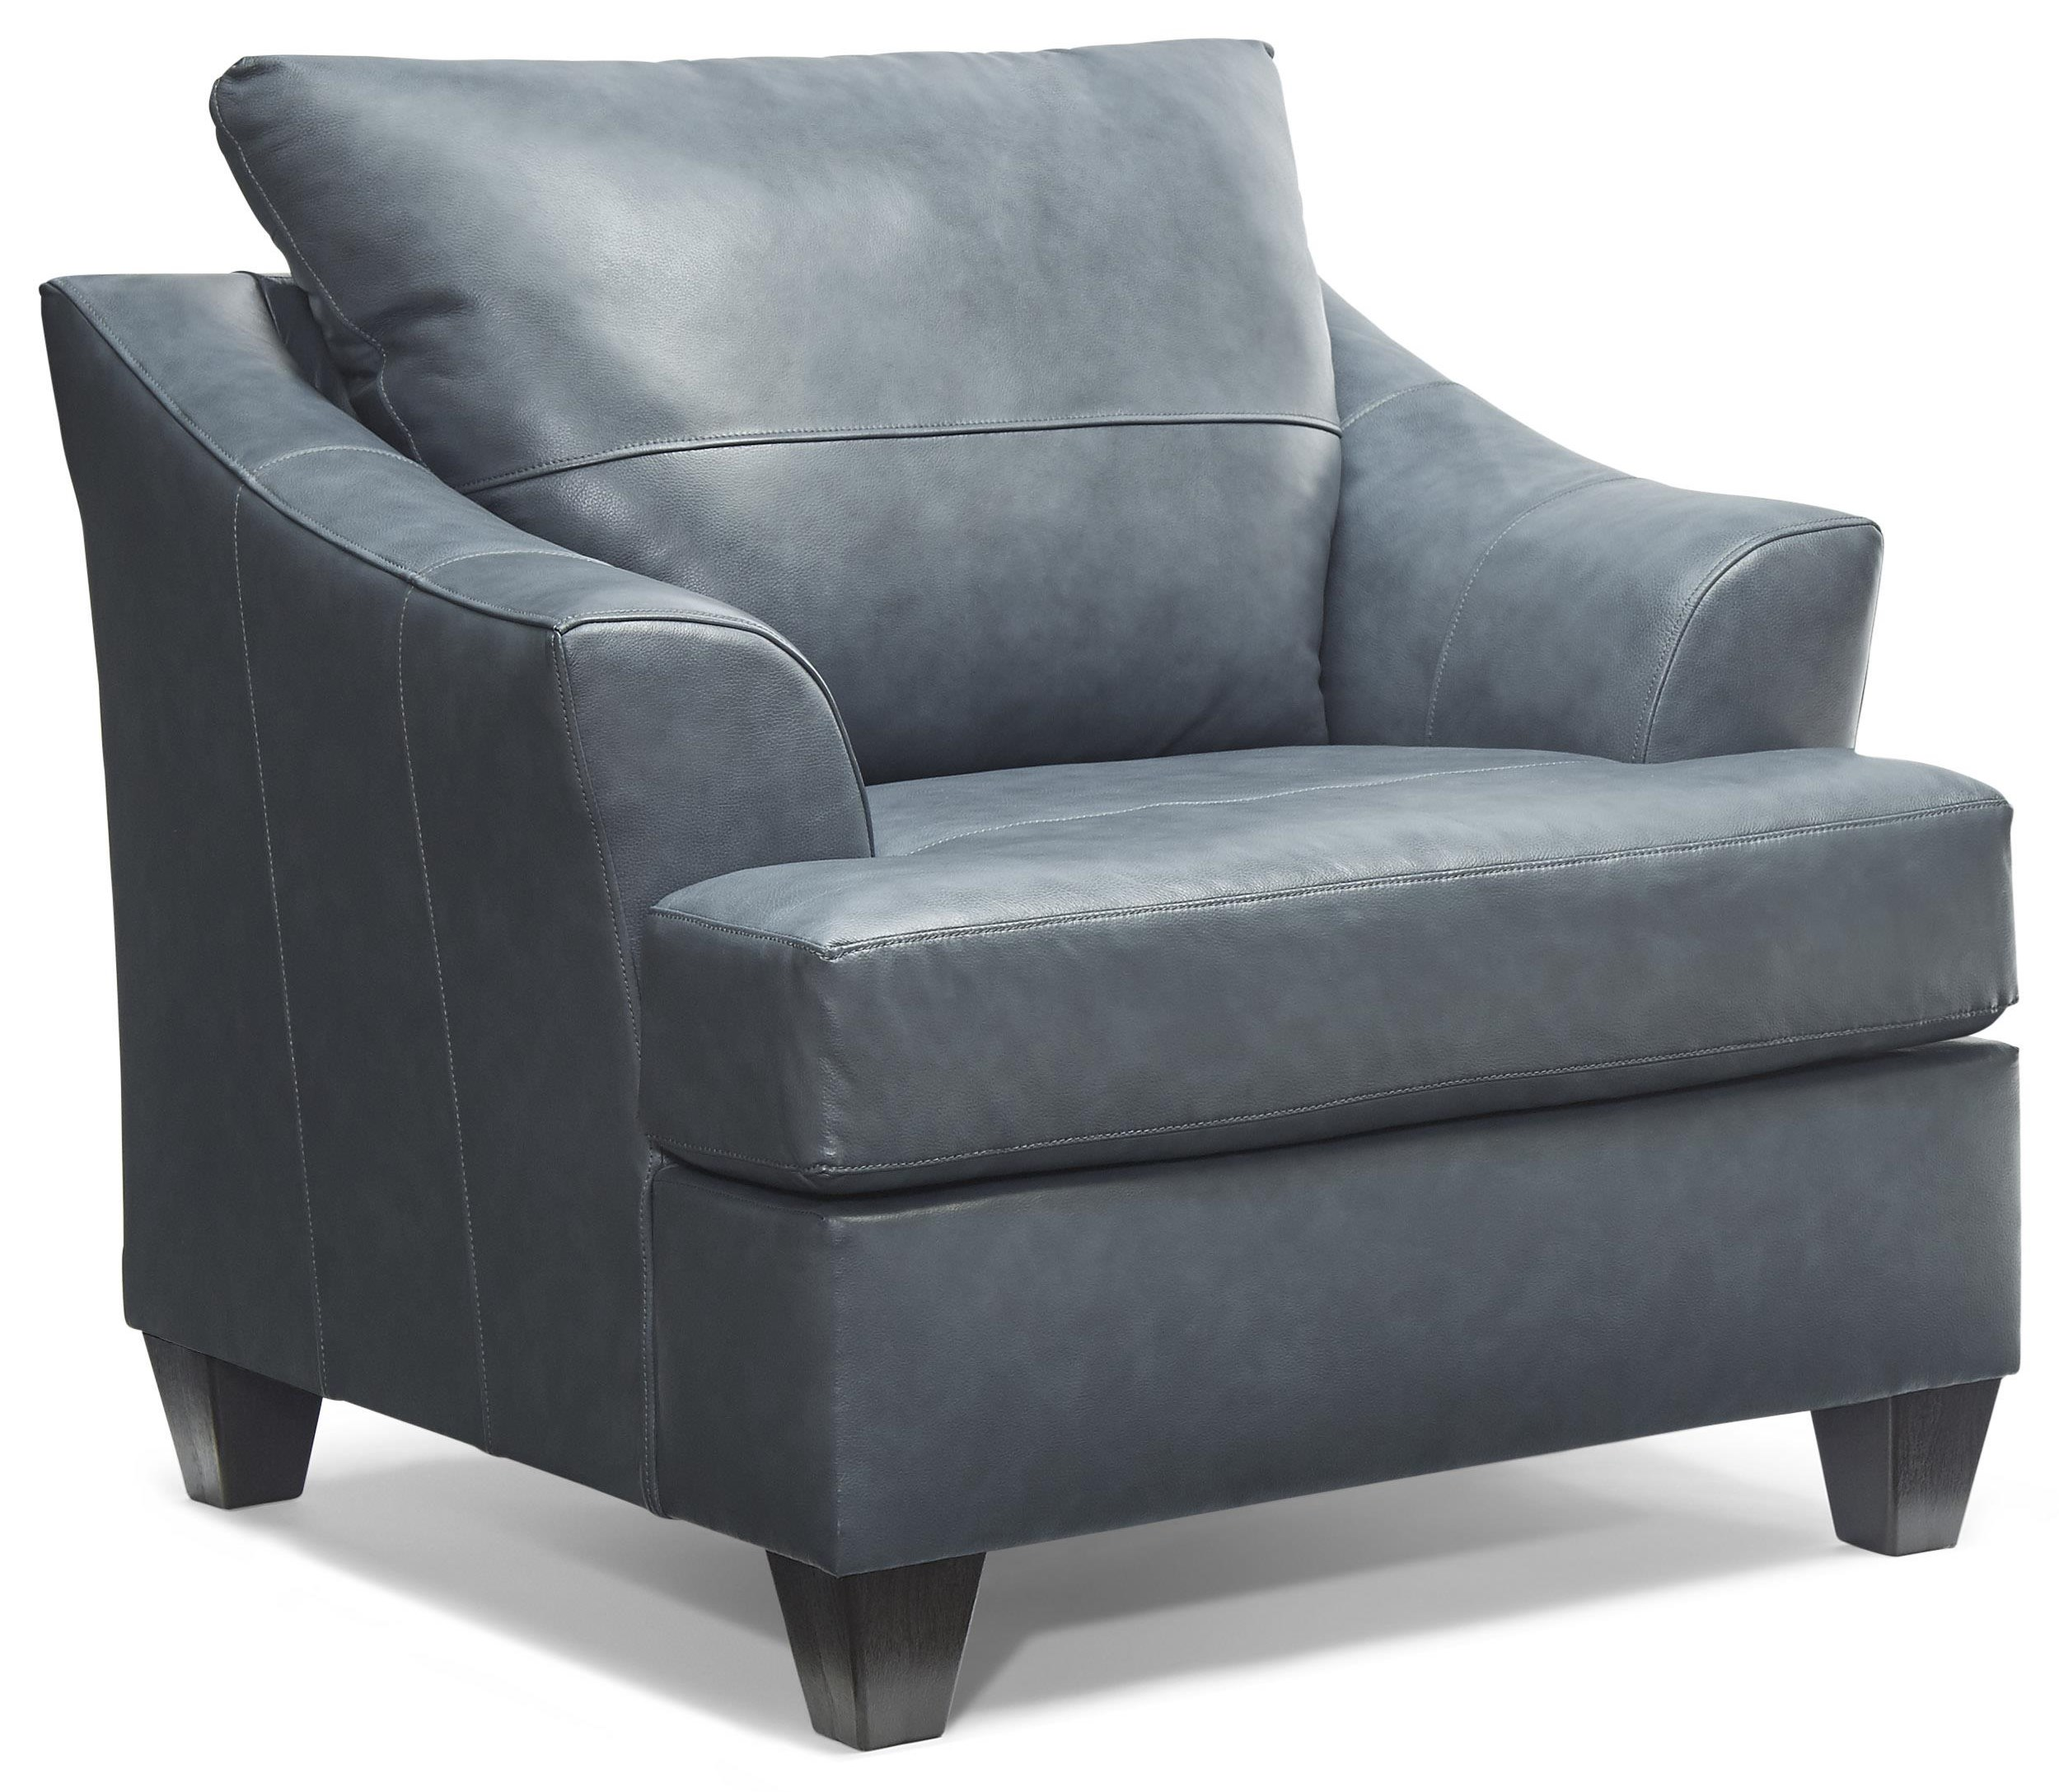 Novaleigh Novaleigh Leather Match Suit Chair by Lane at Morris Home